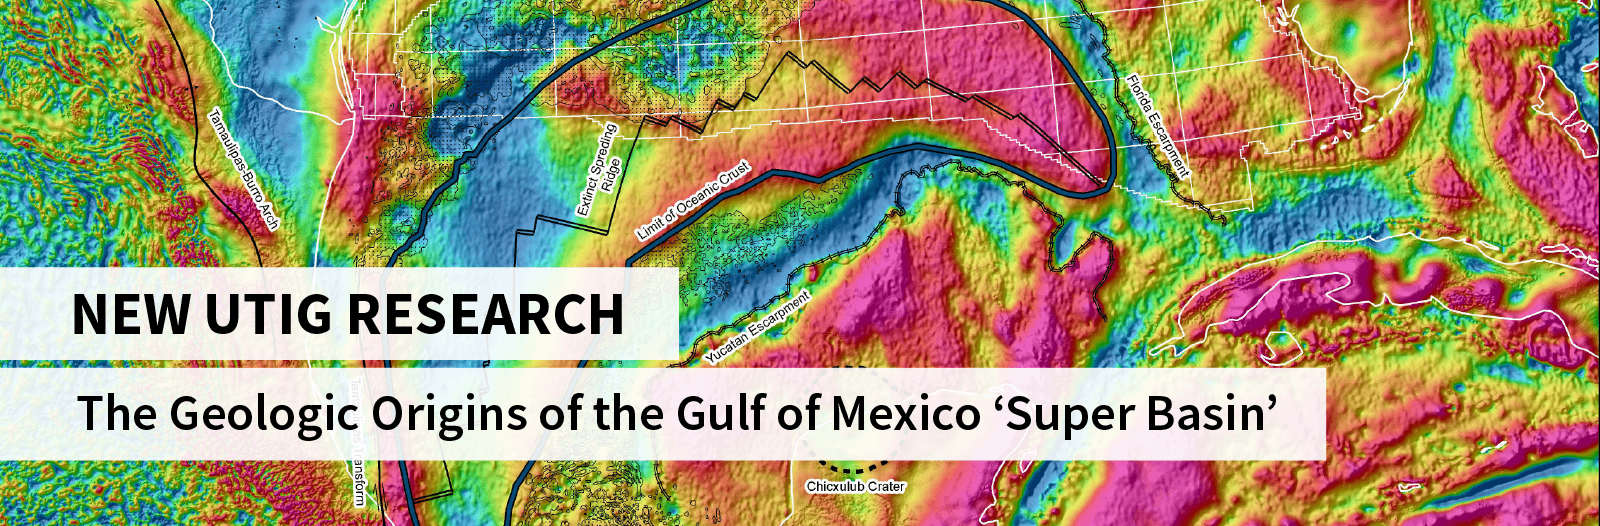 Gulf of Mexico super basin banner